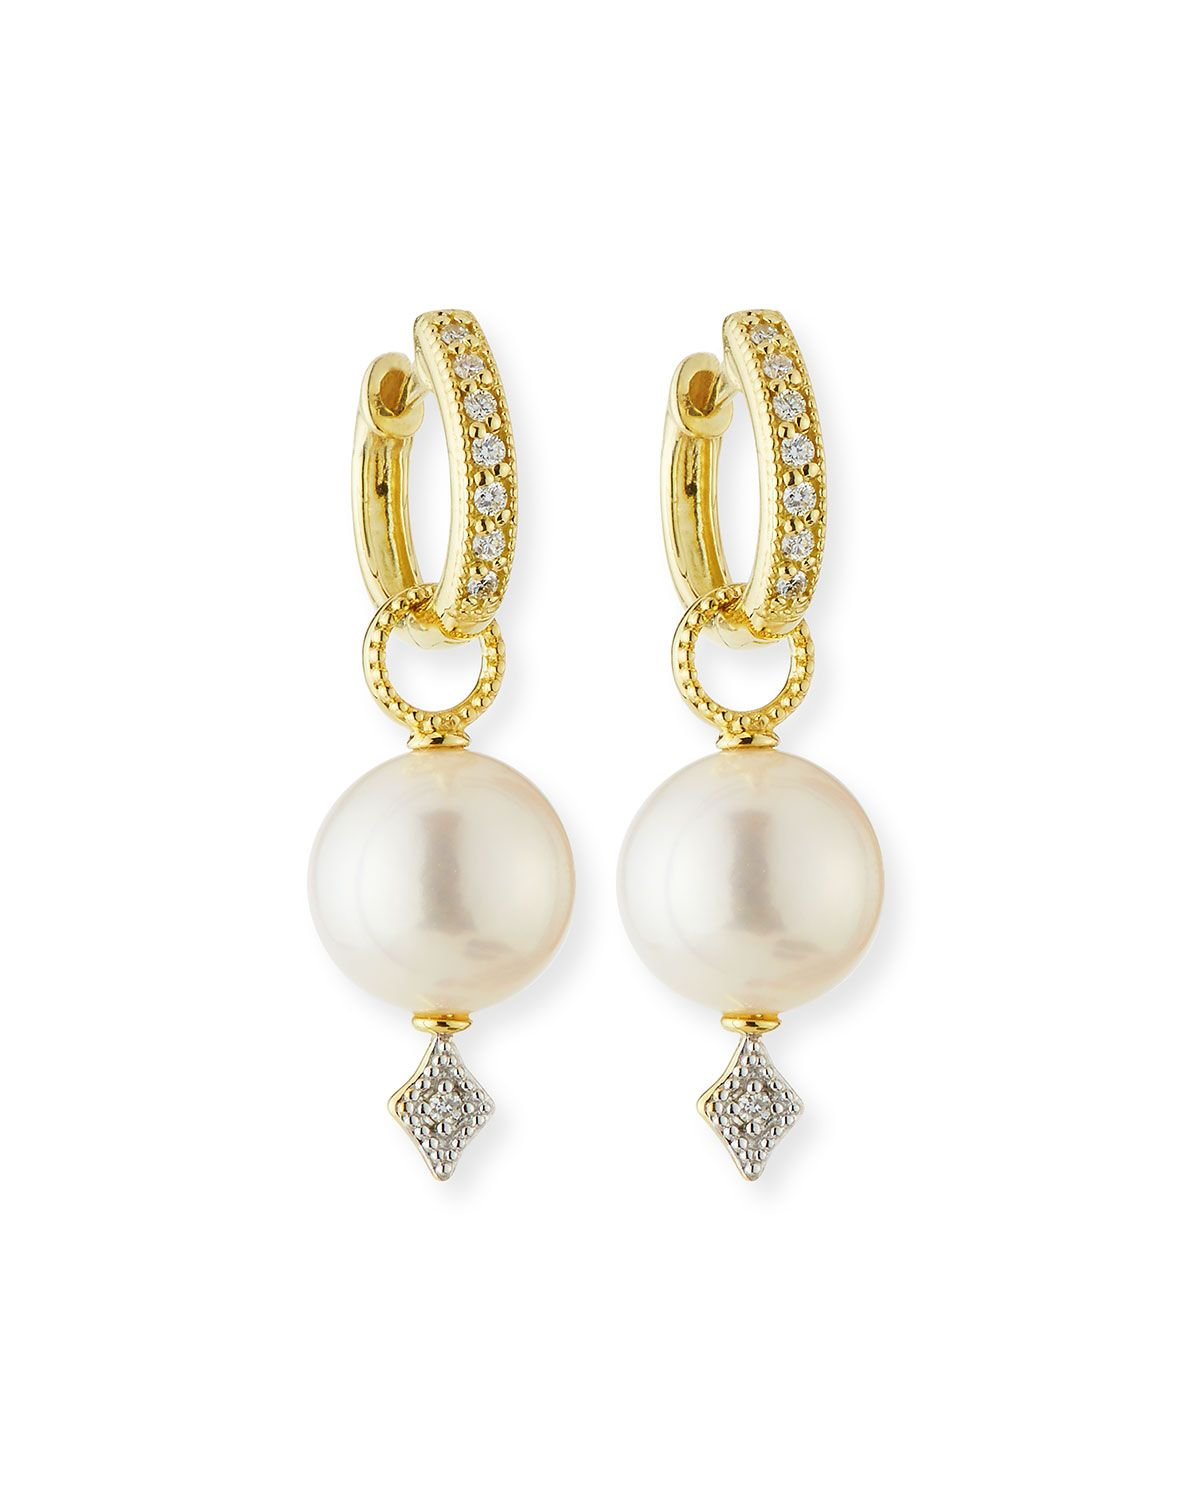 Jude Frances Lisse Large Pearl & Diamond Earring Charms n5Op2QP